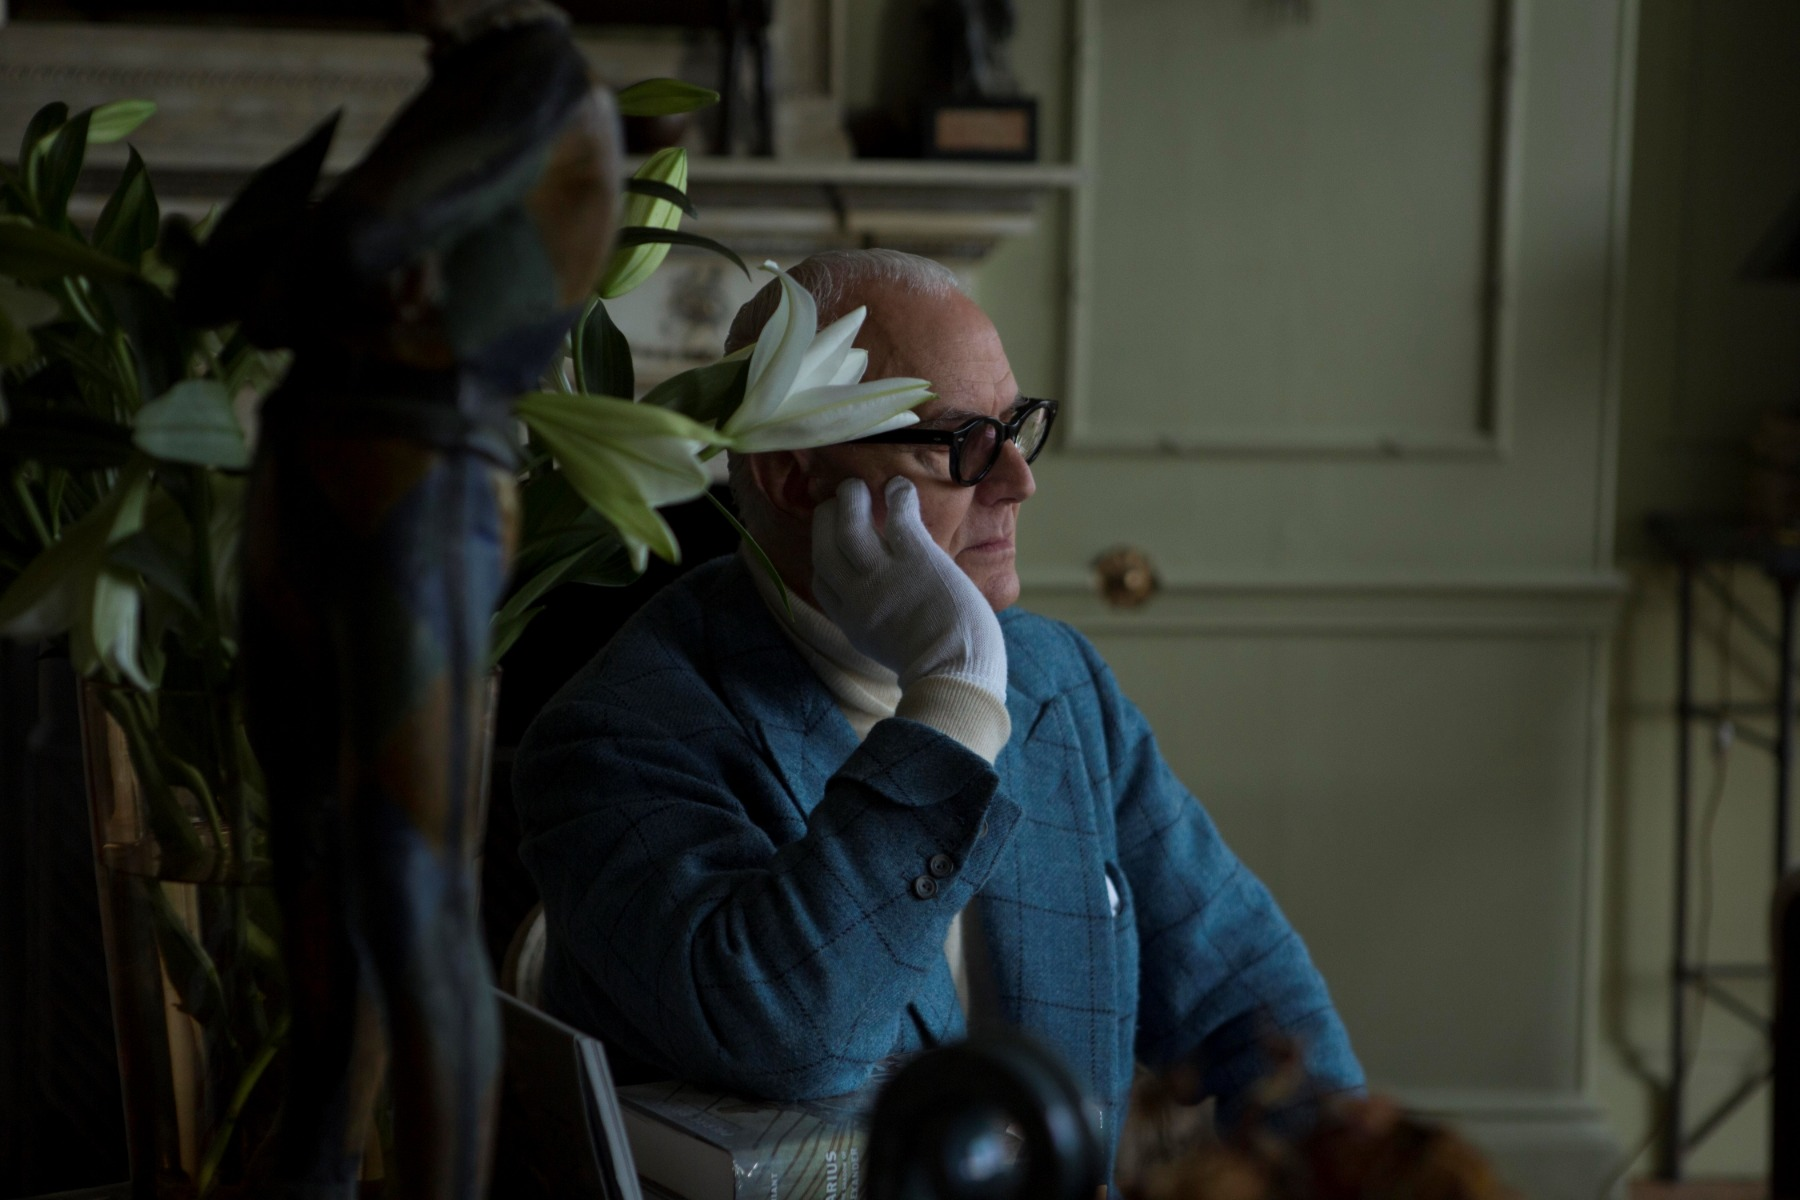 Manolo Blahnik in his study with a beautiful vase of lilies